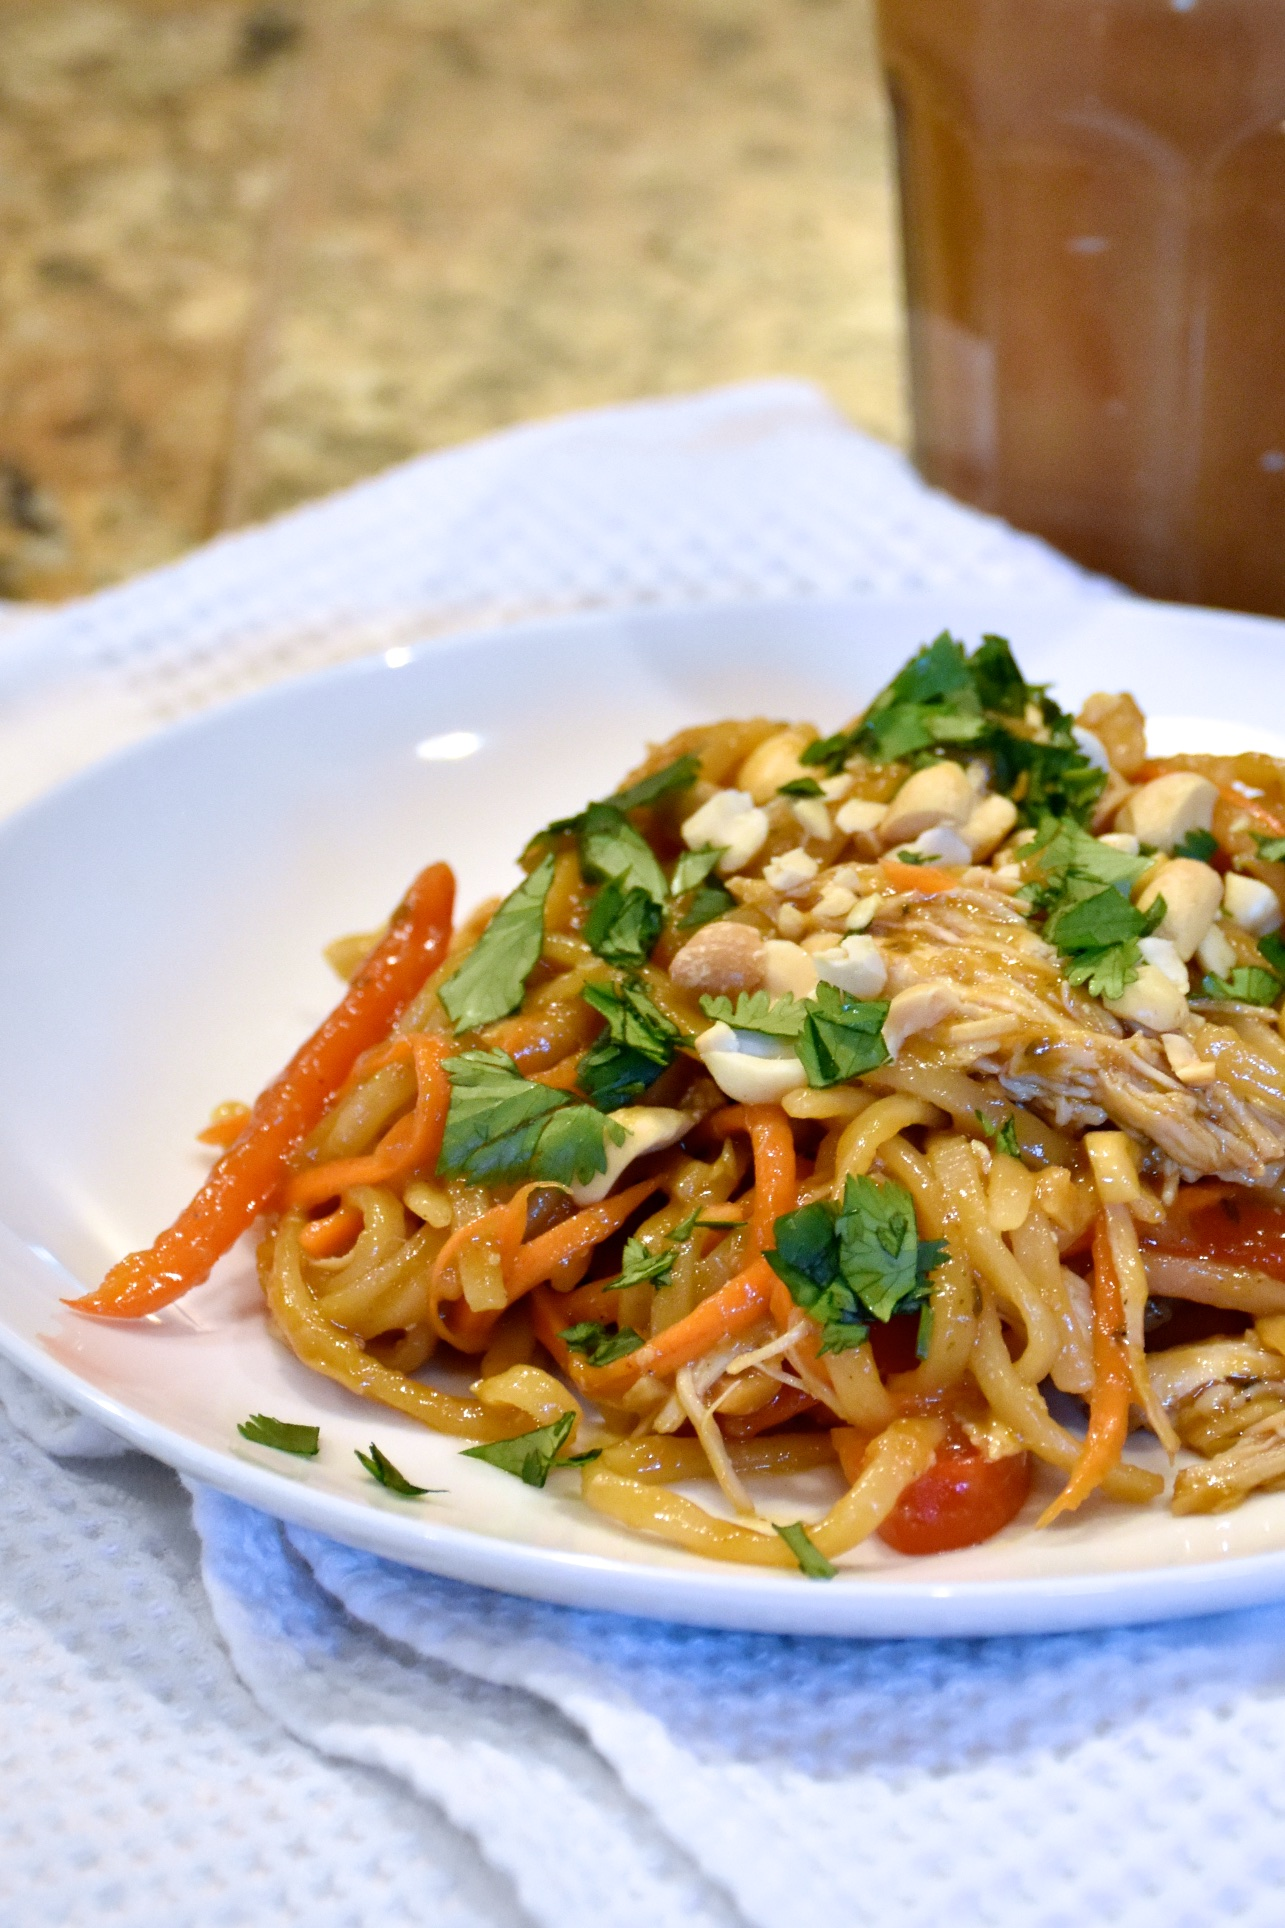 In the mood for Thai food but need it gluten-free? Try this Thai takeout-at-home Pad Thai recipe that is gluten-free and dairy-free. Click through for the full recipe.